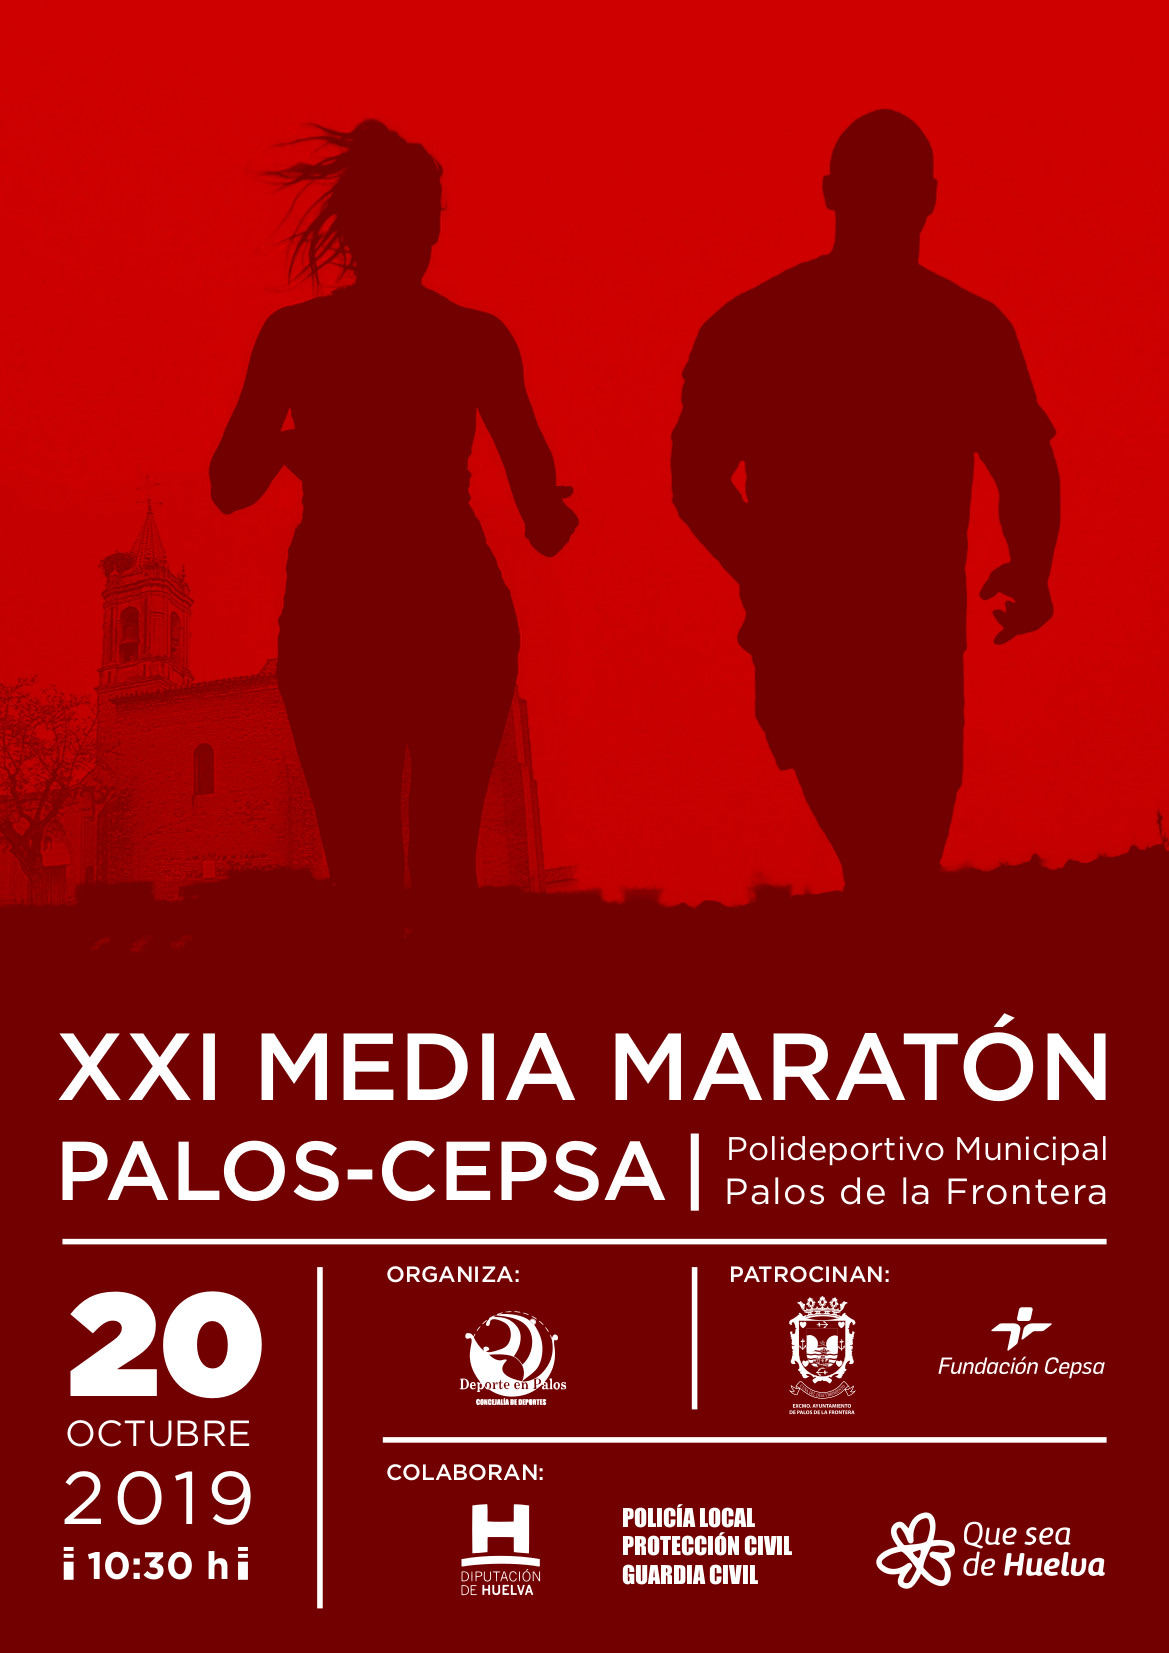 2019 cartel media maratón Palos Cepsa